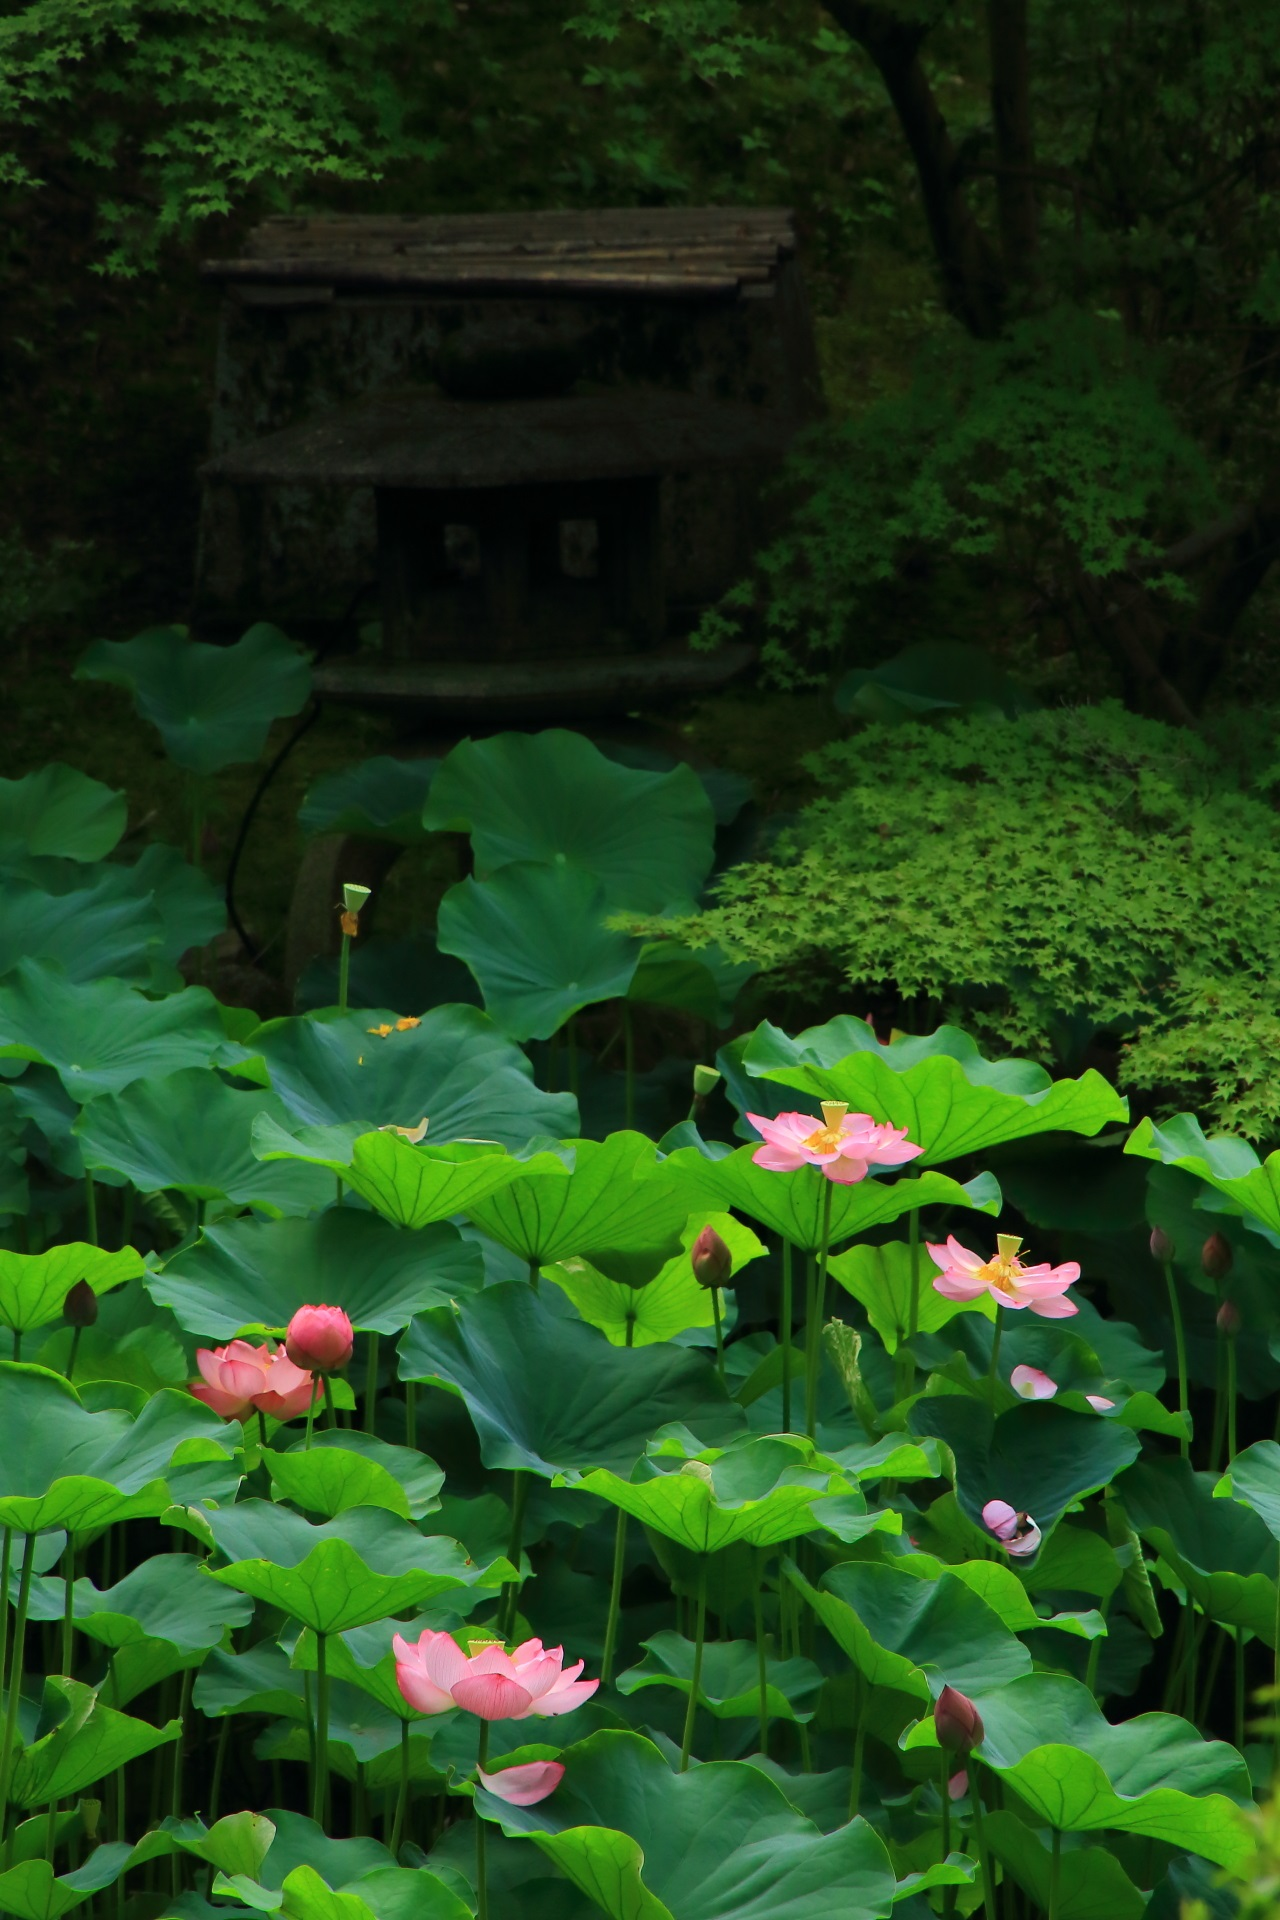 Lotus flower and blue maple of Otani-Honbyo Mausoleum in Kyoto,Japan